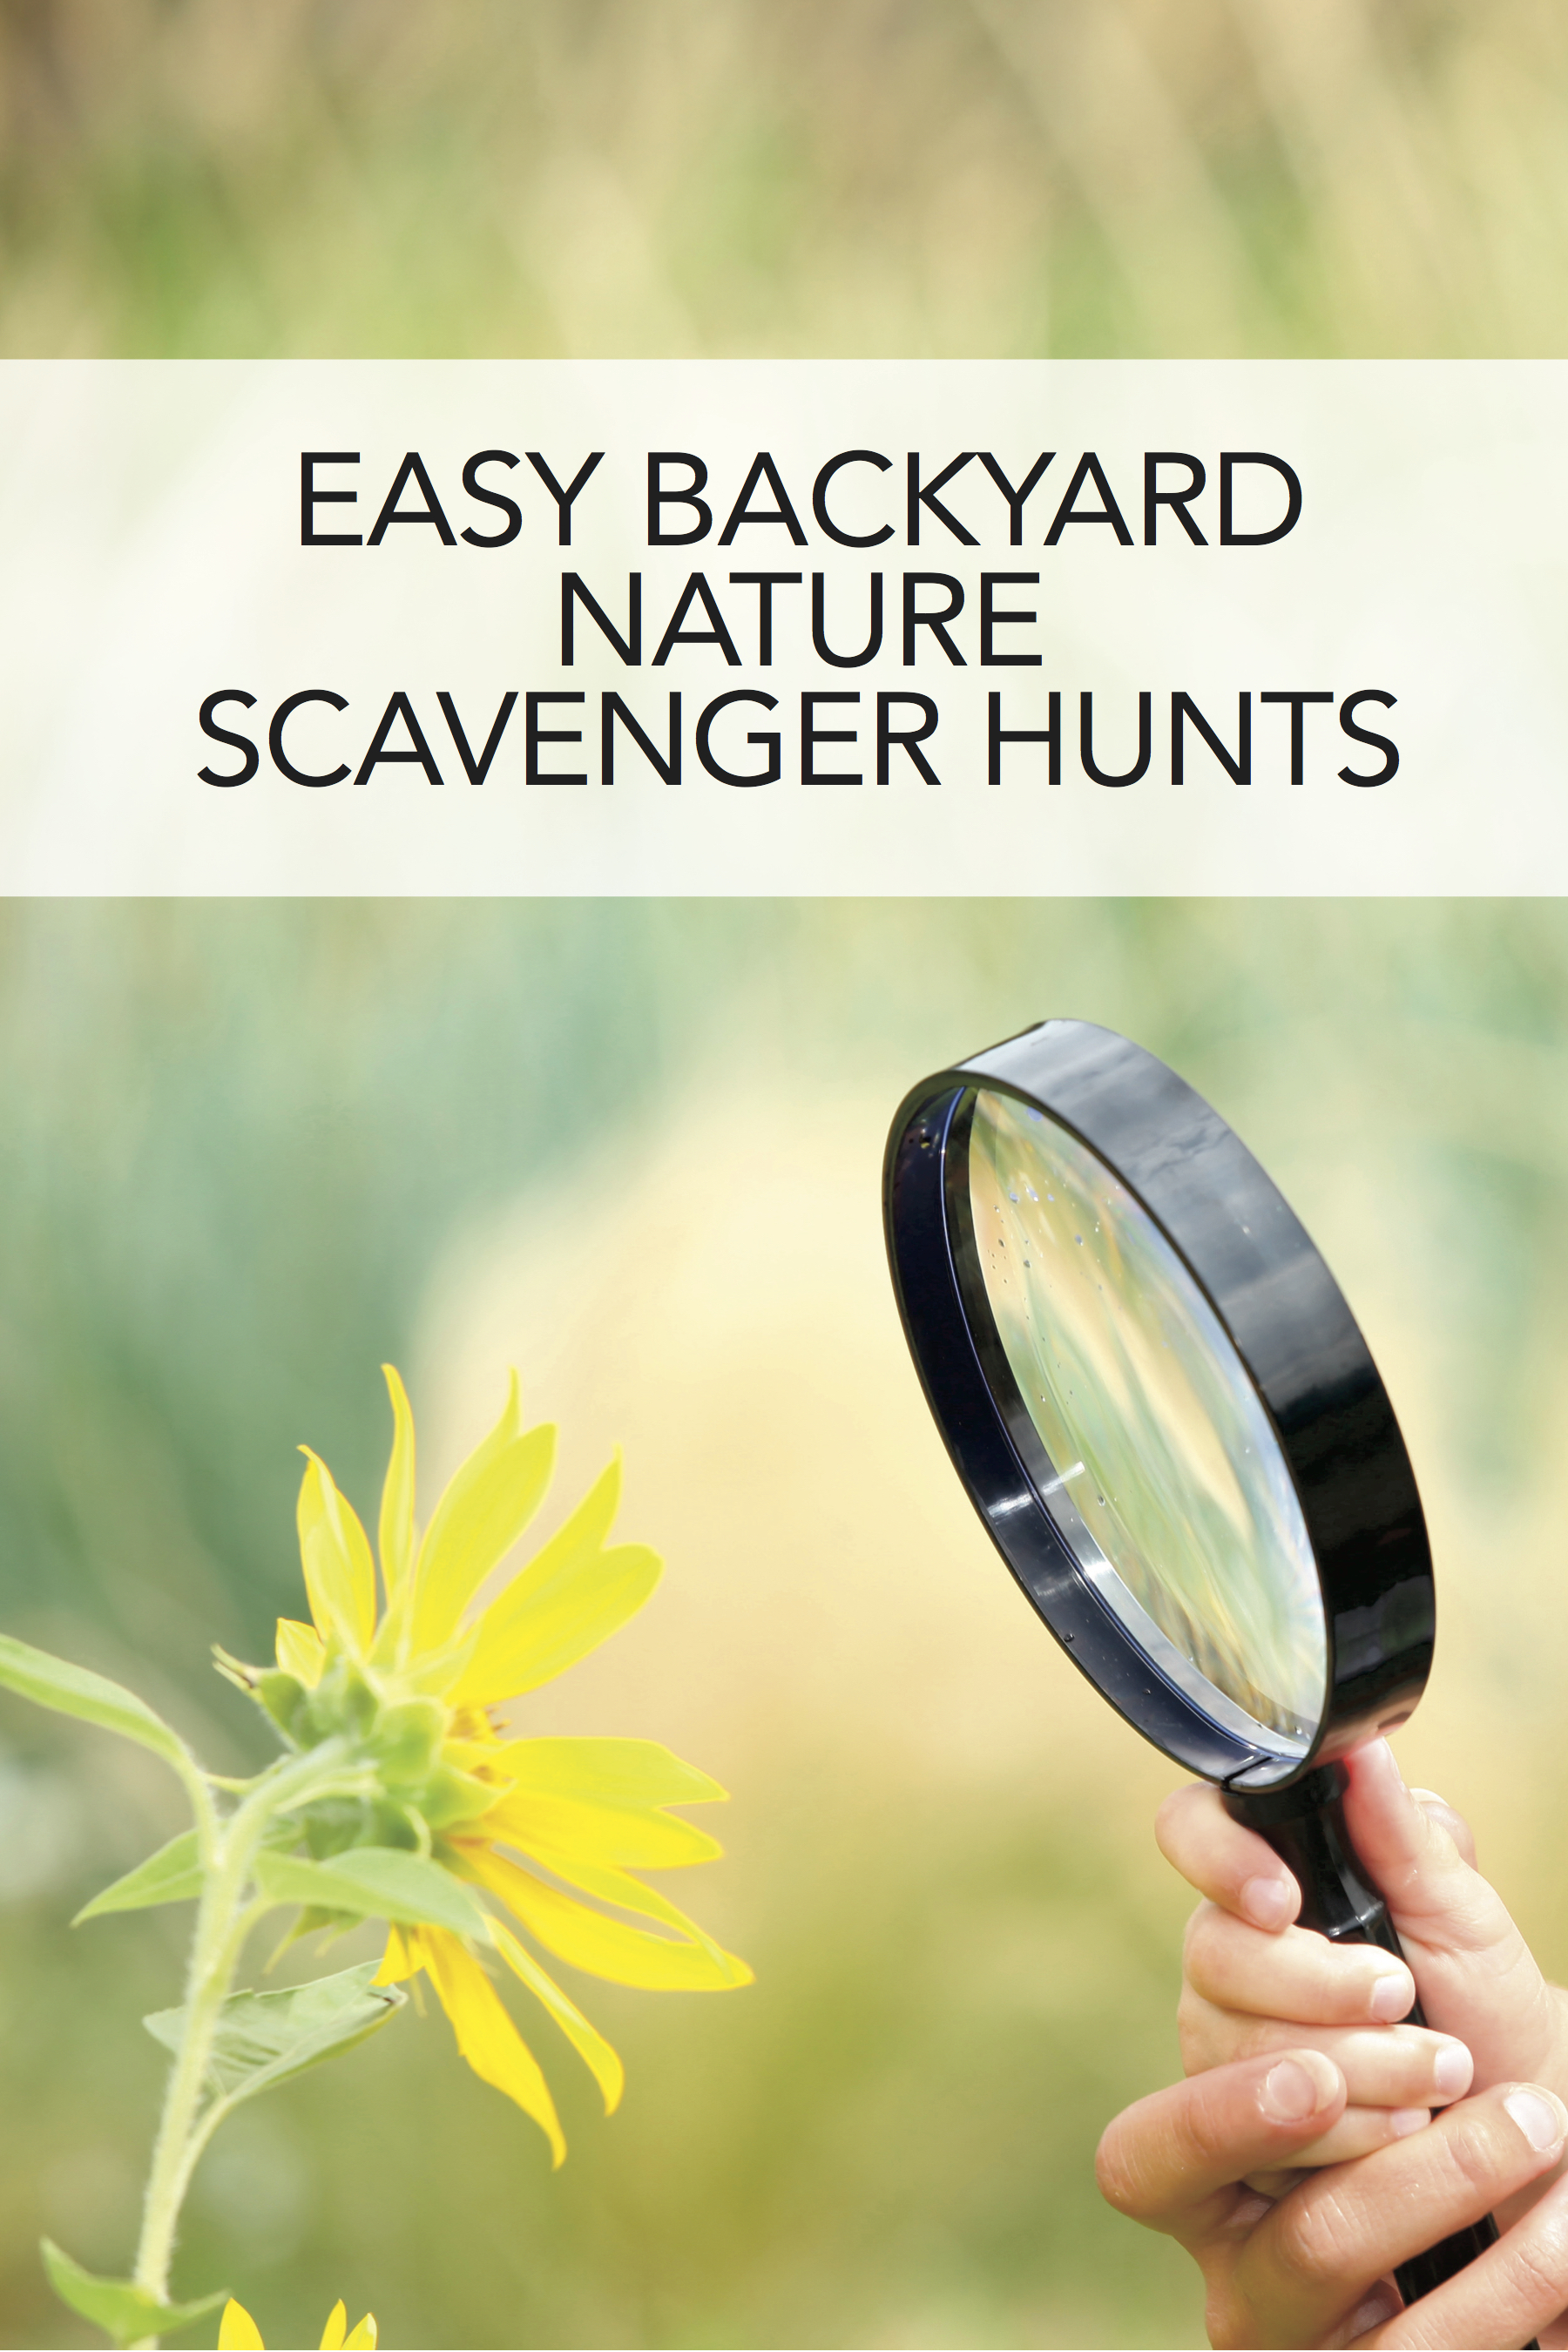 Love this idea for spring homeschooling: Nature scavenger hunts! #homeschool